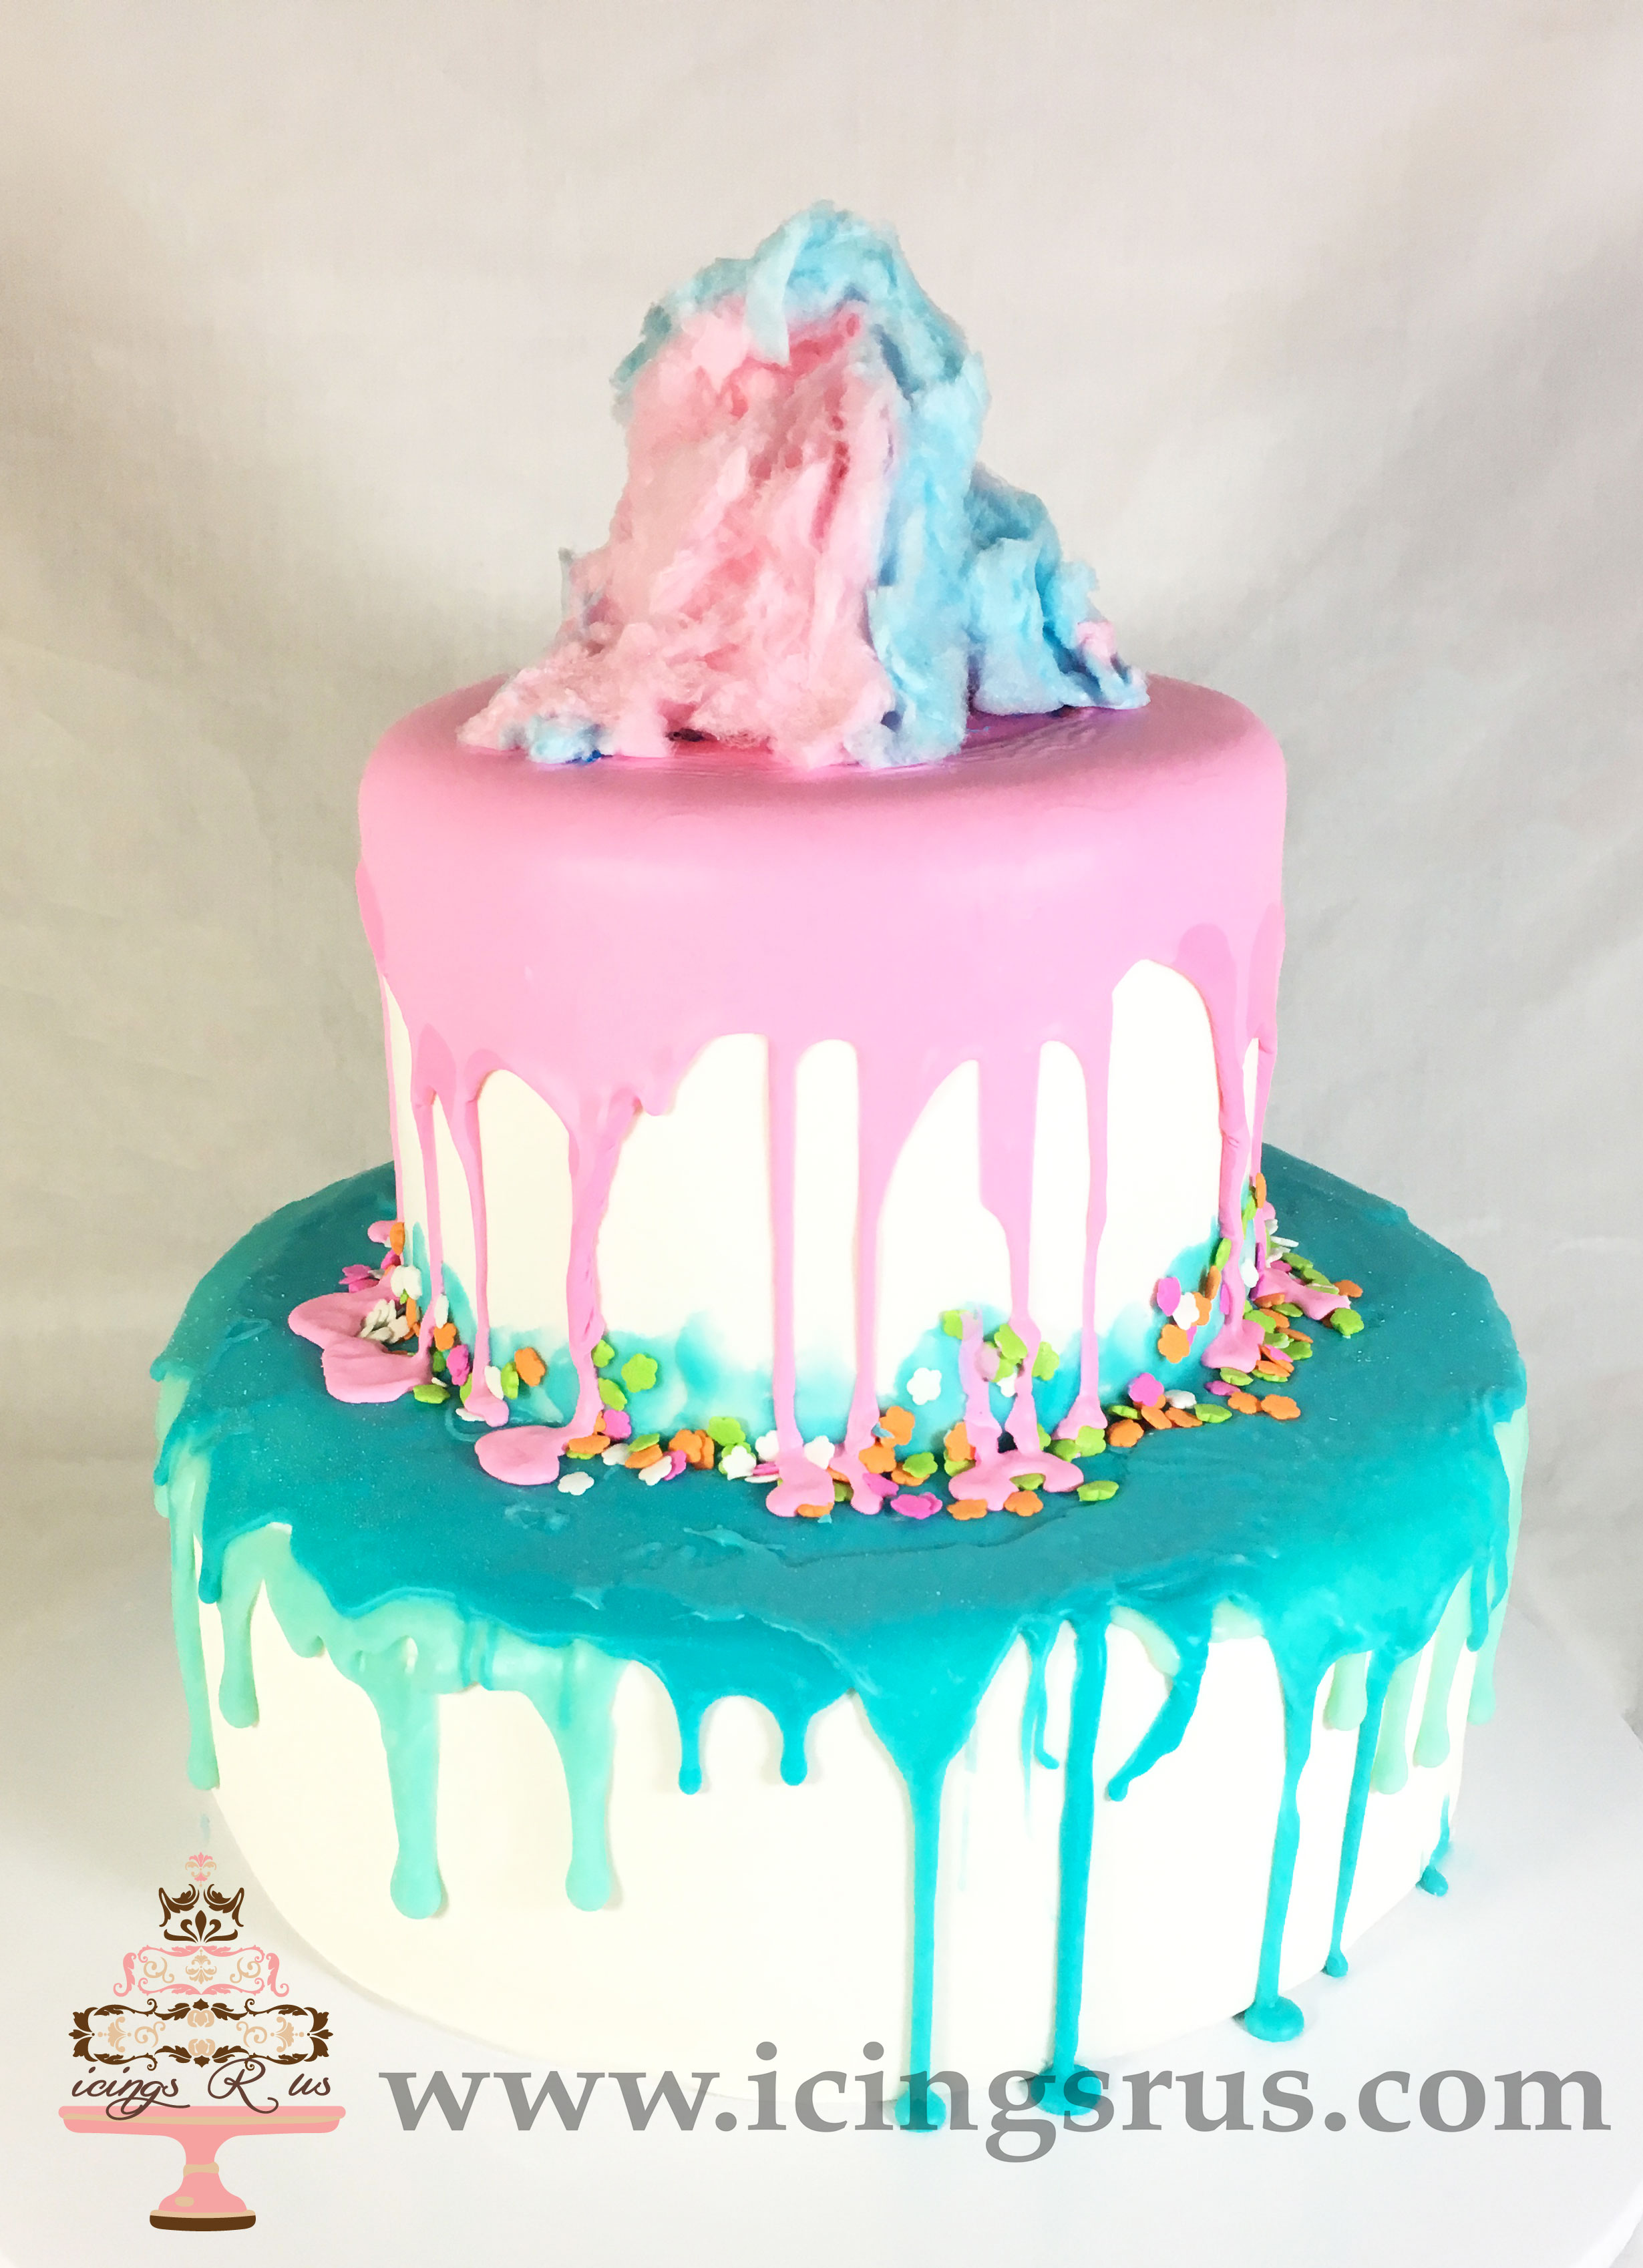 Cotton Candy Melt Cake With Icings R Us